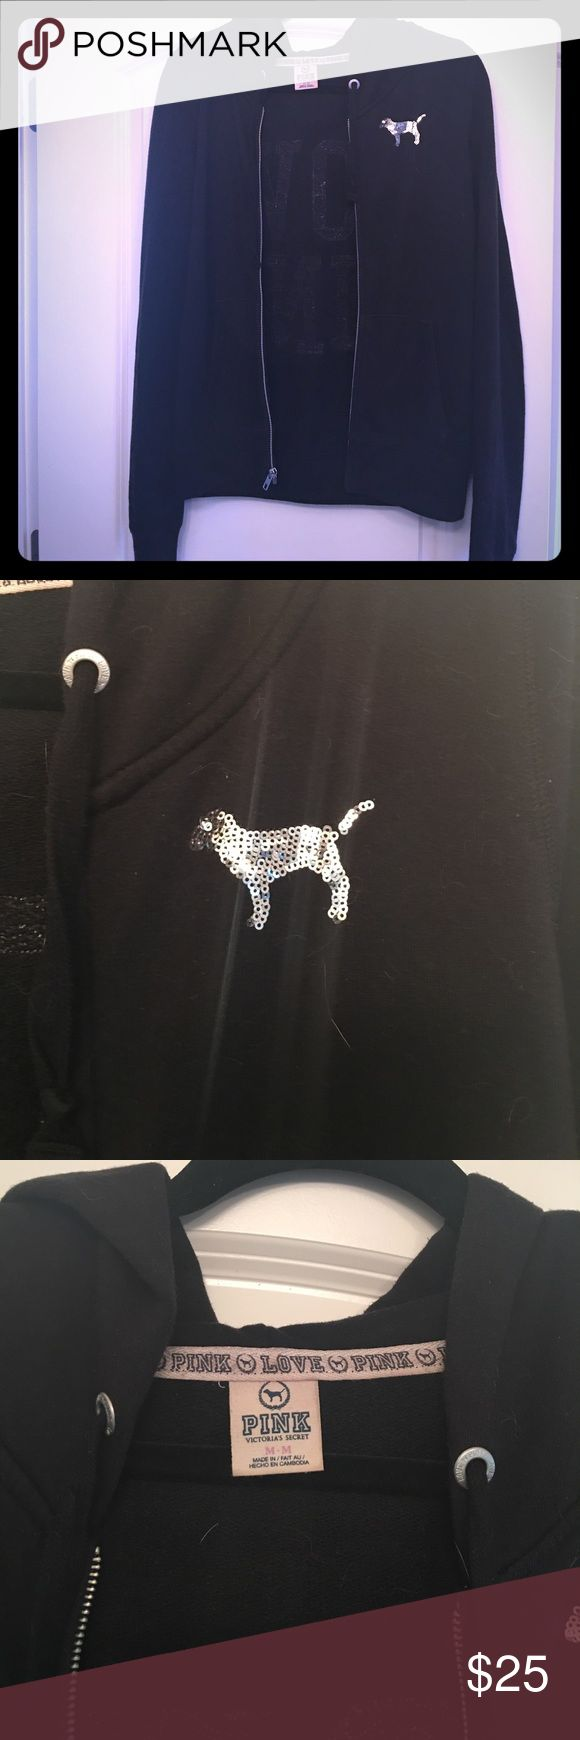 Victoria's Secret PINK animal print hoodie In great condition! Zipper still works perfectly. Nice long sleeves and not too heavy so can be worn year round. PINK Victoria's Secret Tops Sweatshirts & Hoodies